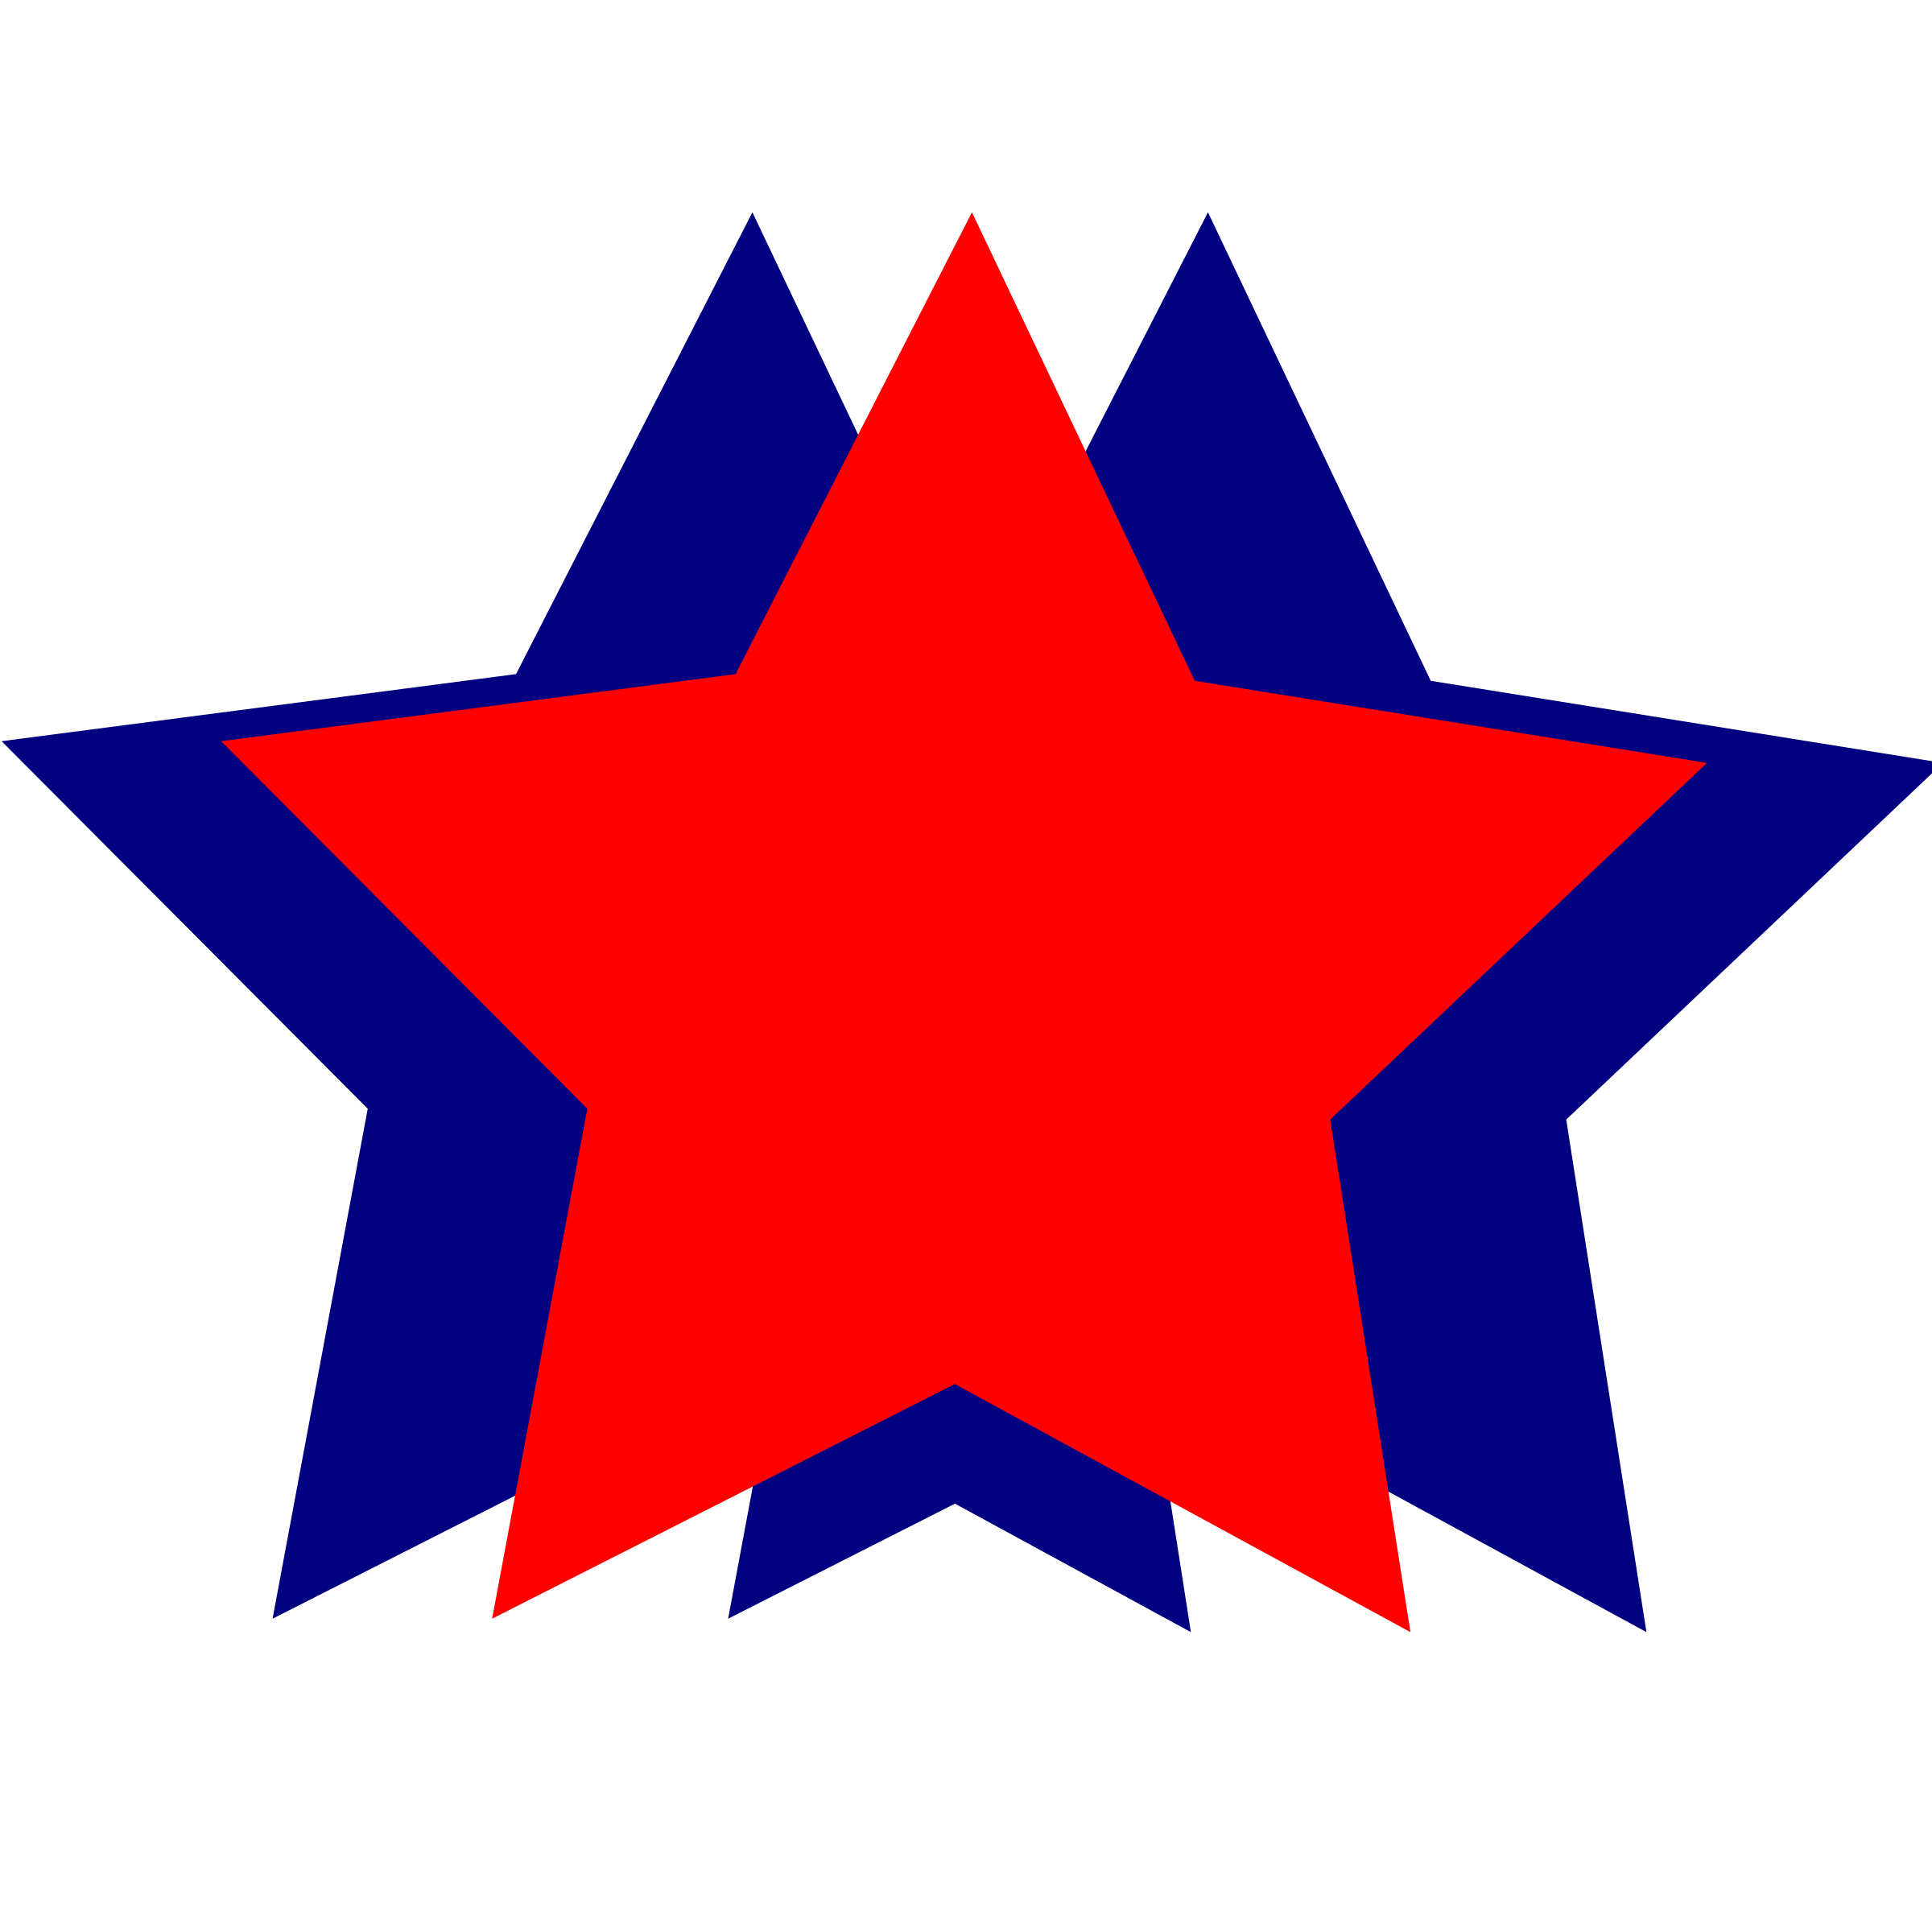 Stars - Red and Blue by wordtoall.org